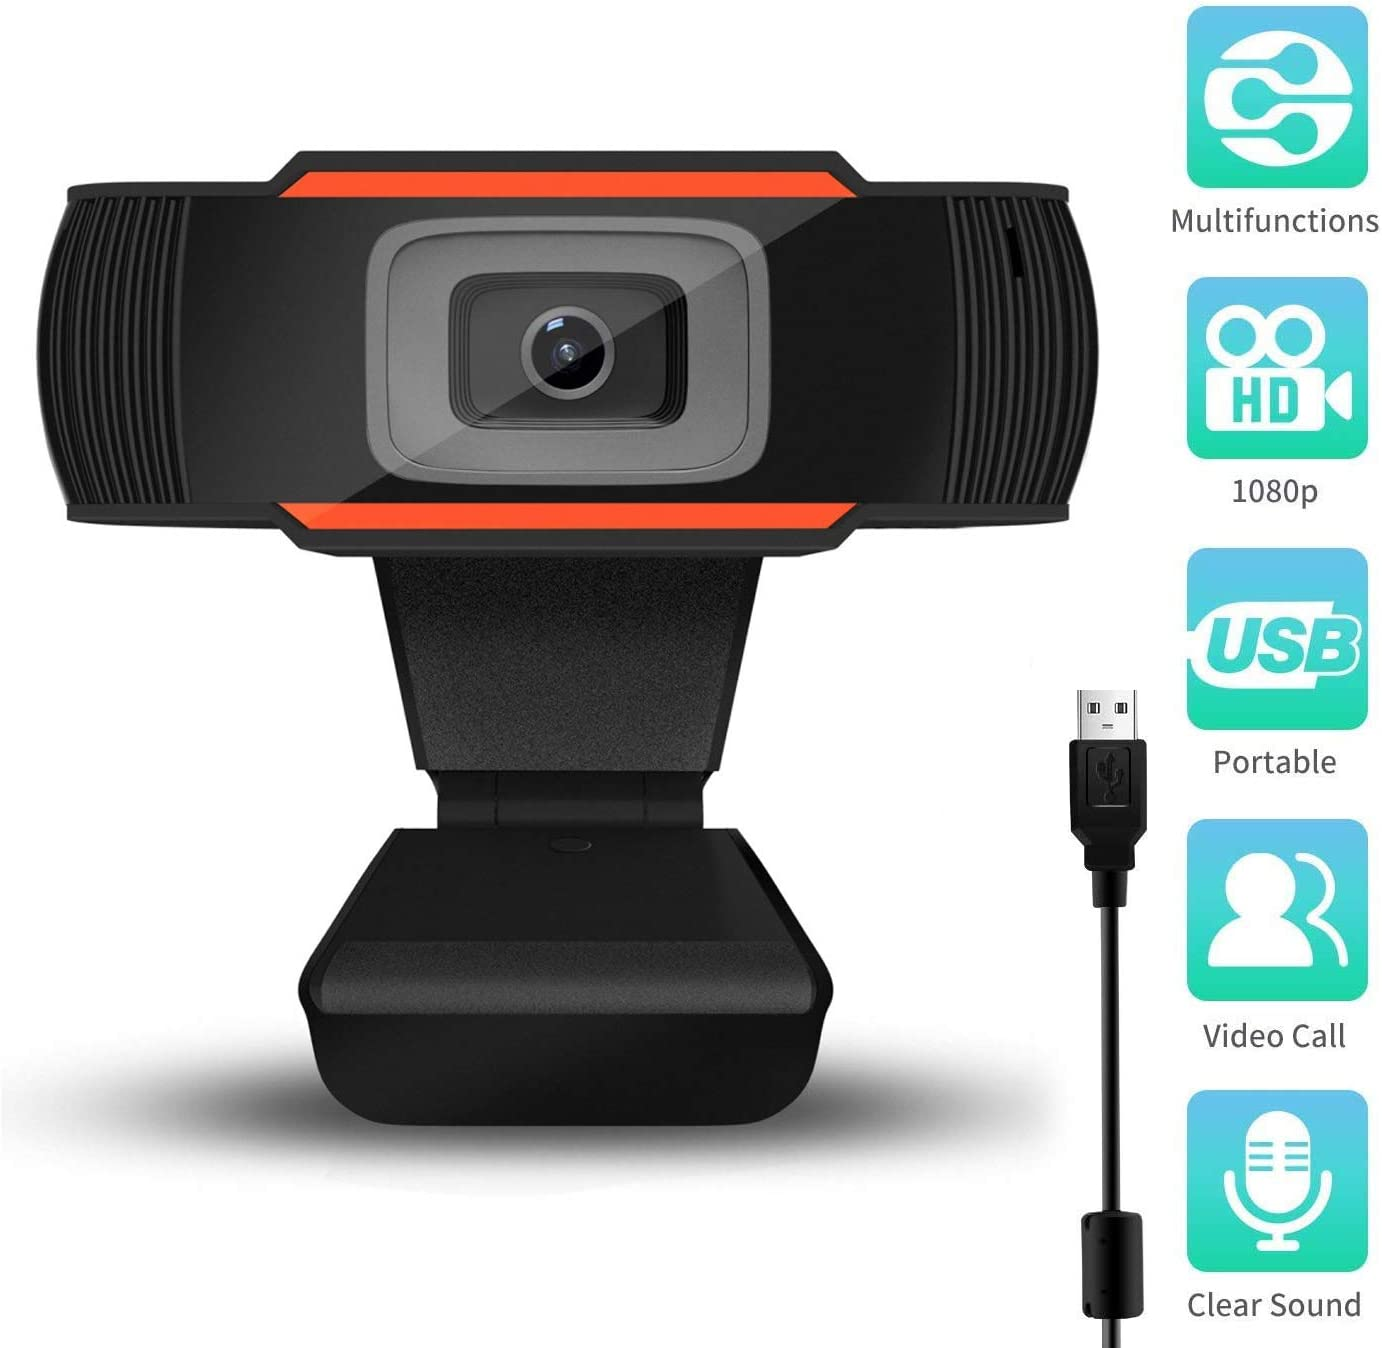 1080P Full HD Webcam with Microphone for Desktop PC Laptop Mac, Auto Focus Web Camera USB Computer Camera for Remote Conference, Games, Network Teaching Calling Gaming Streaming Video. (Black 1080)